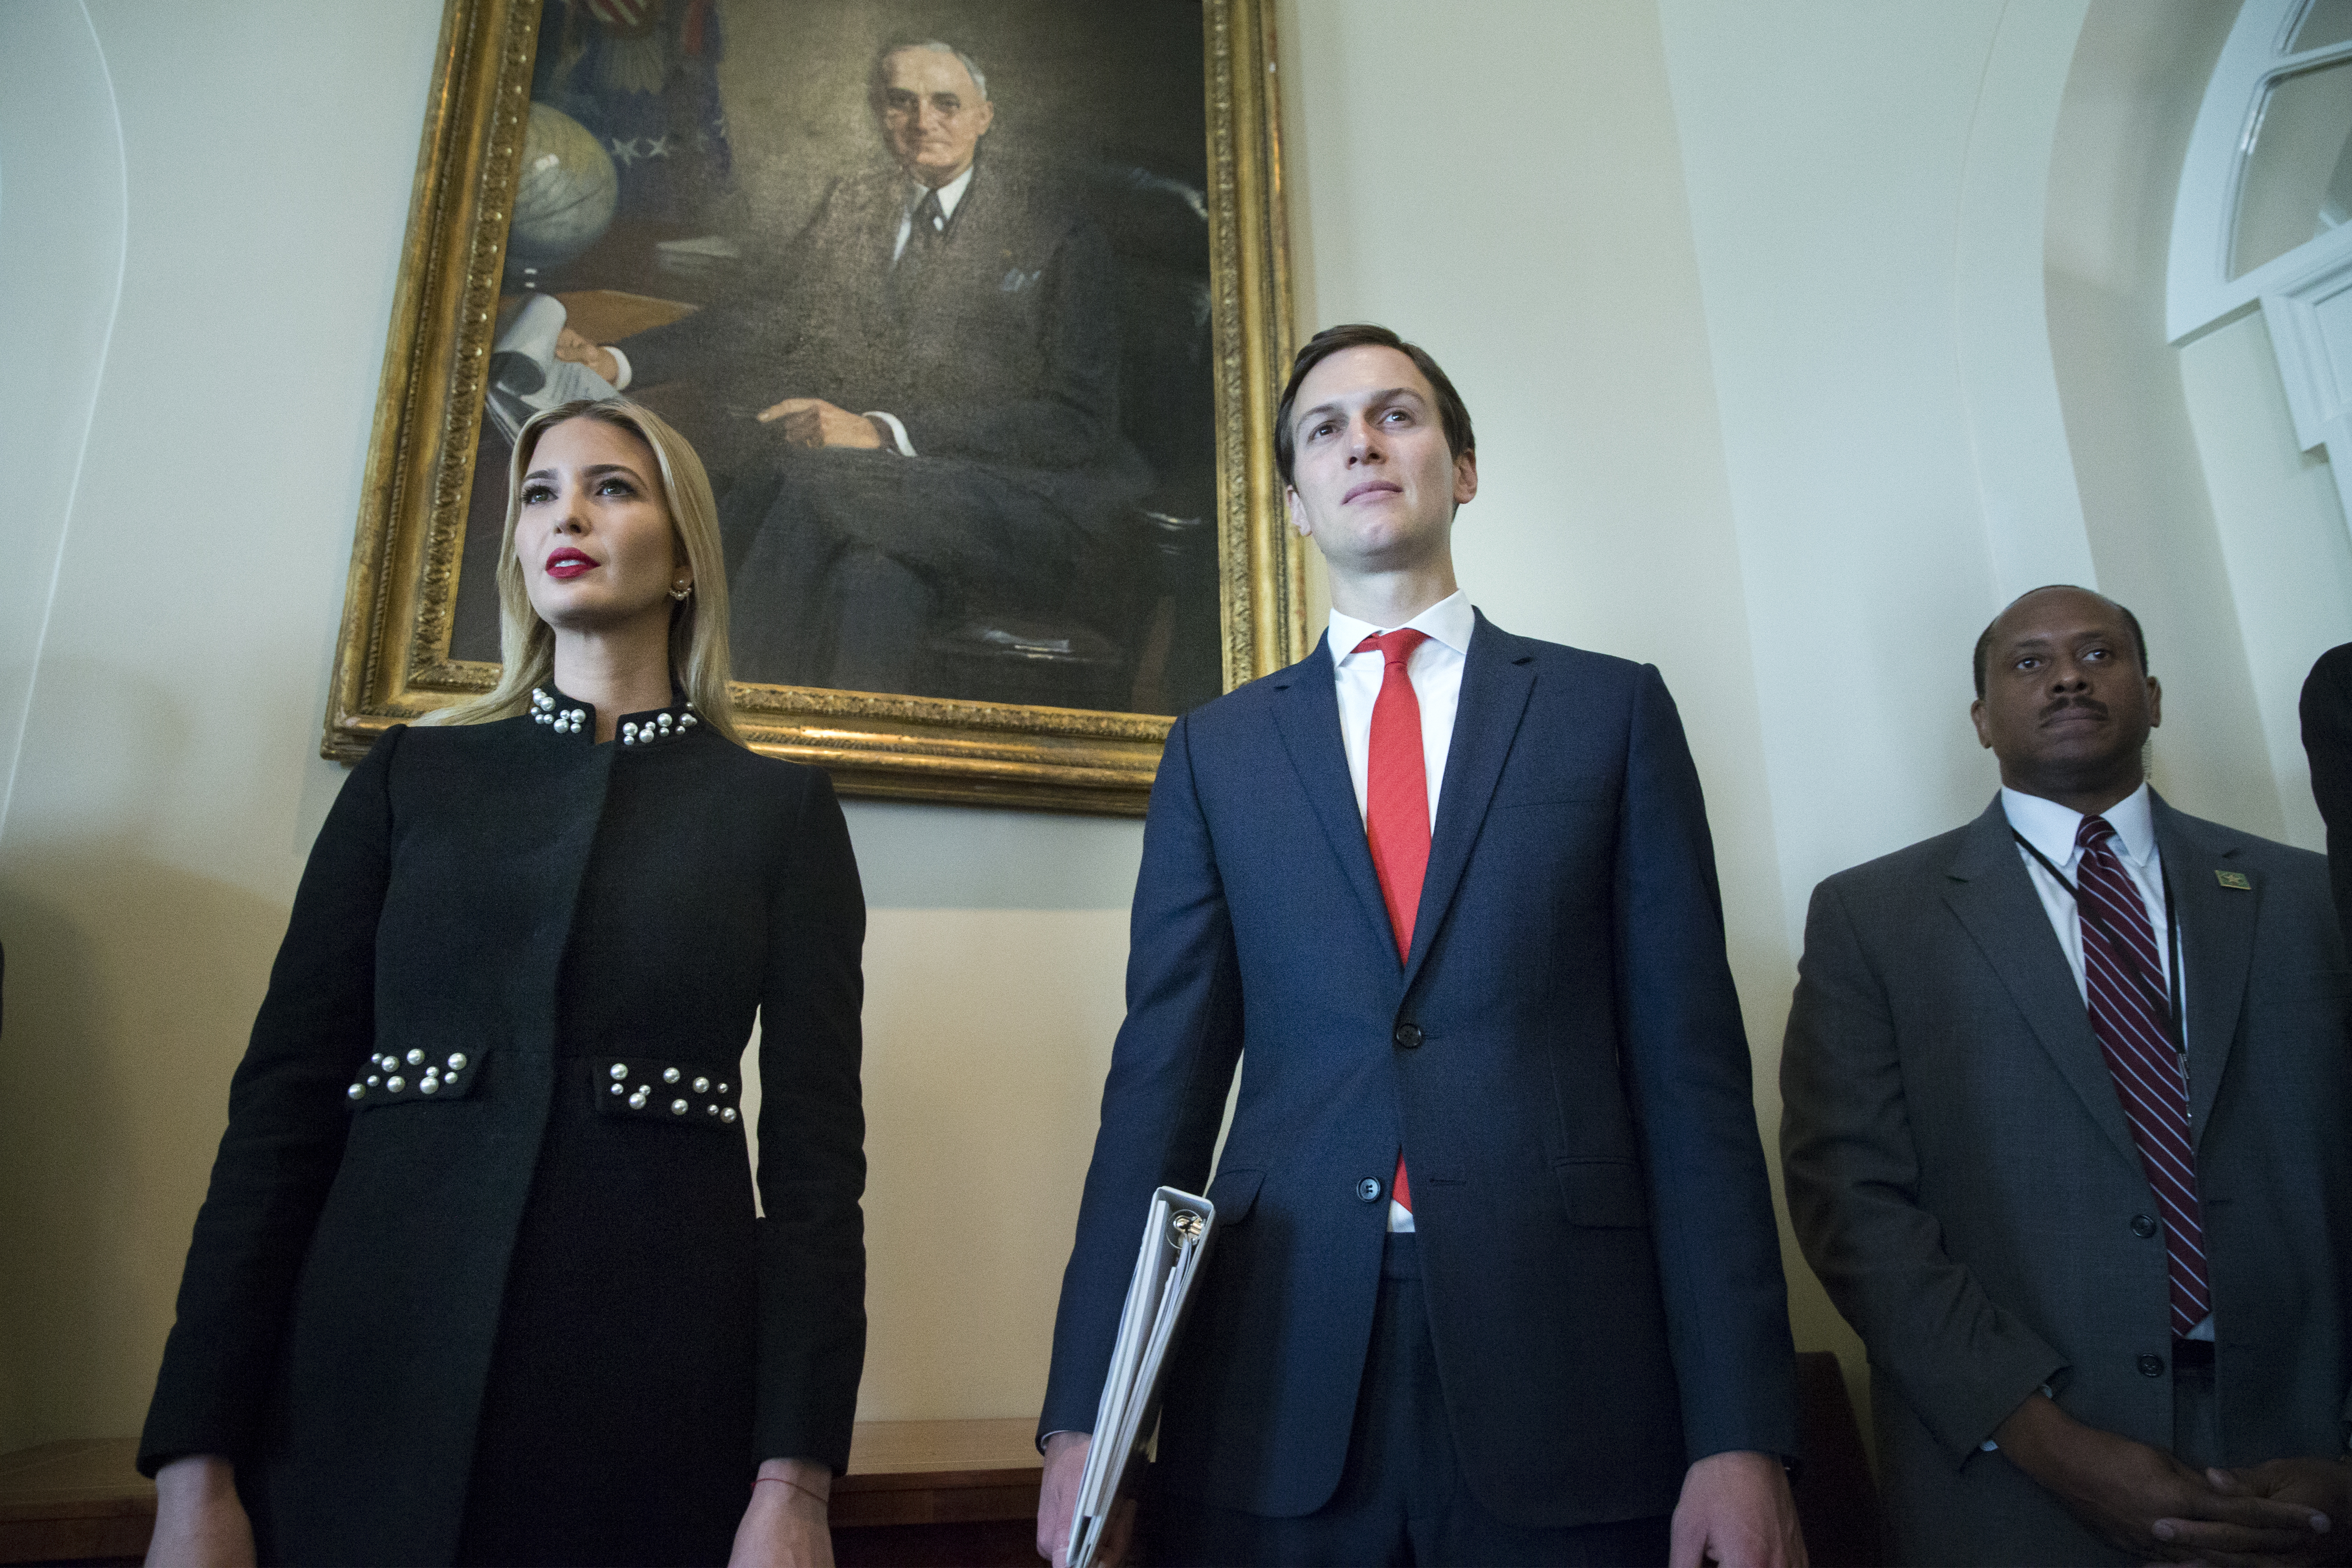 WASHINGTON, DC - MARCH 8: White House Senior Advisor Jared Kushner (R) and Ivanka Trump (L) attend a meeting held by US President Donald J. Trump with members of his Cabinet, in the Cabinet Room of the White House in Washington, DC, (Photo by Michael Reynolds-Pool/Getty Images)